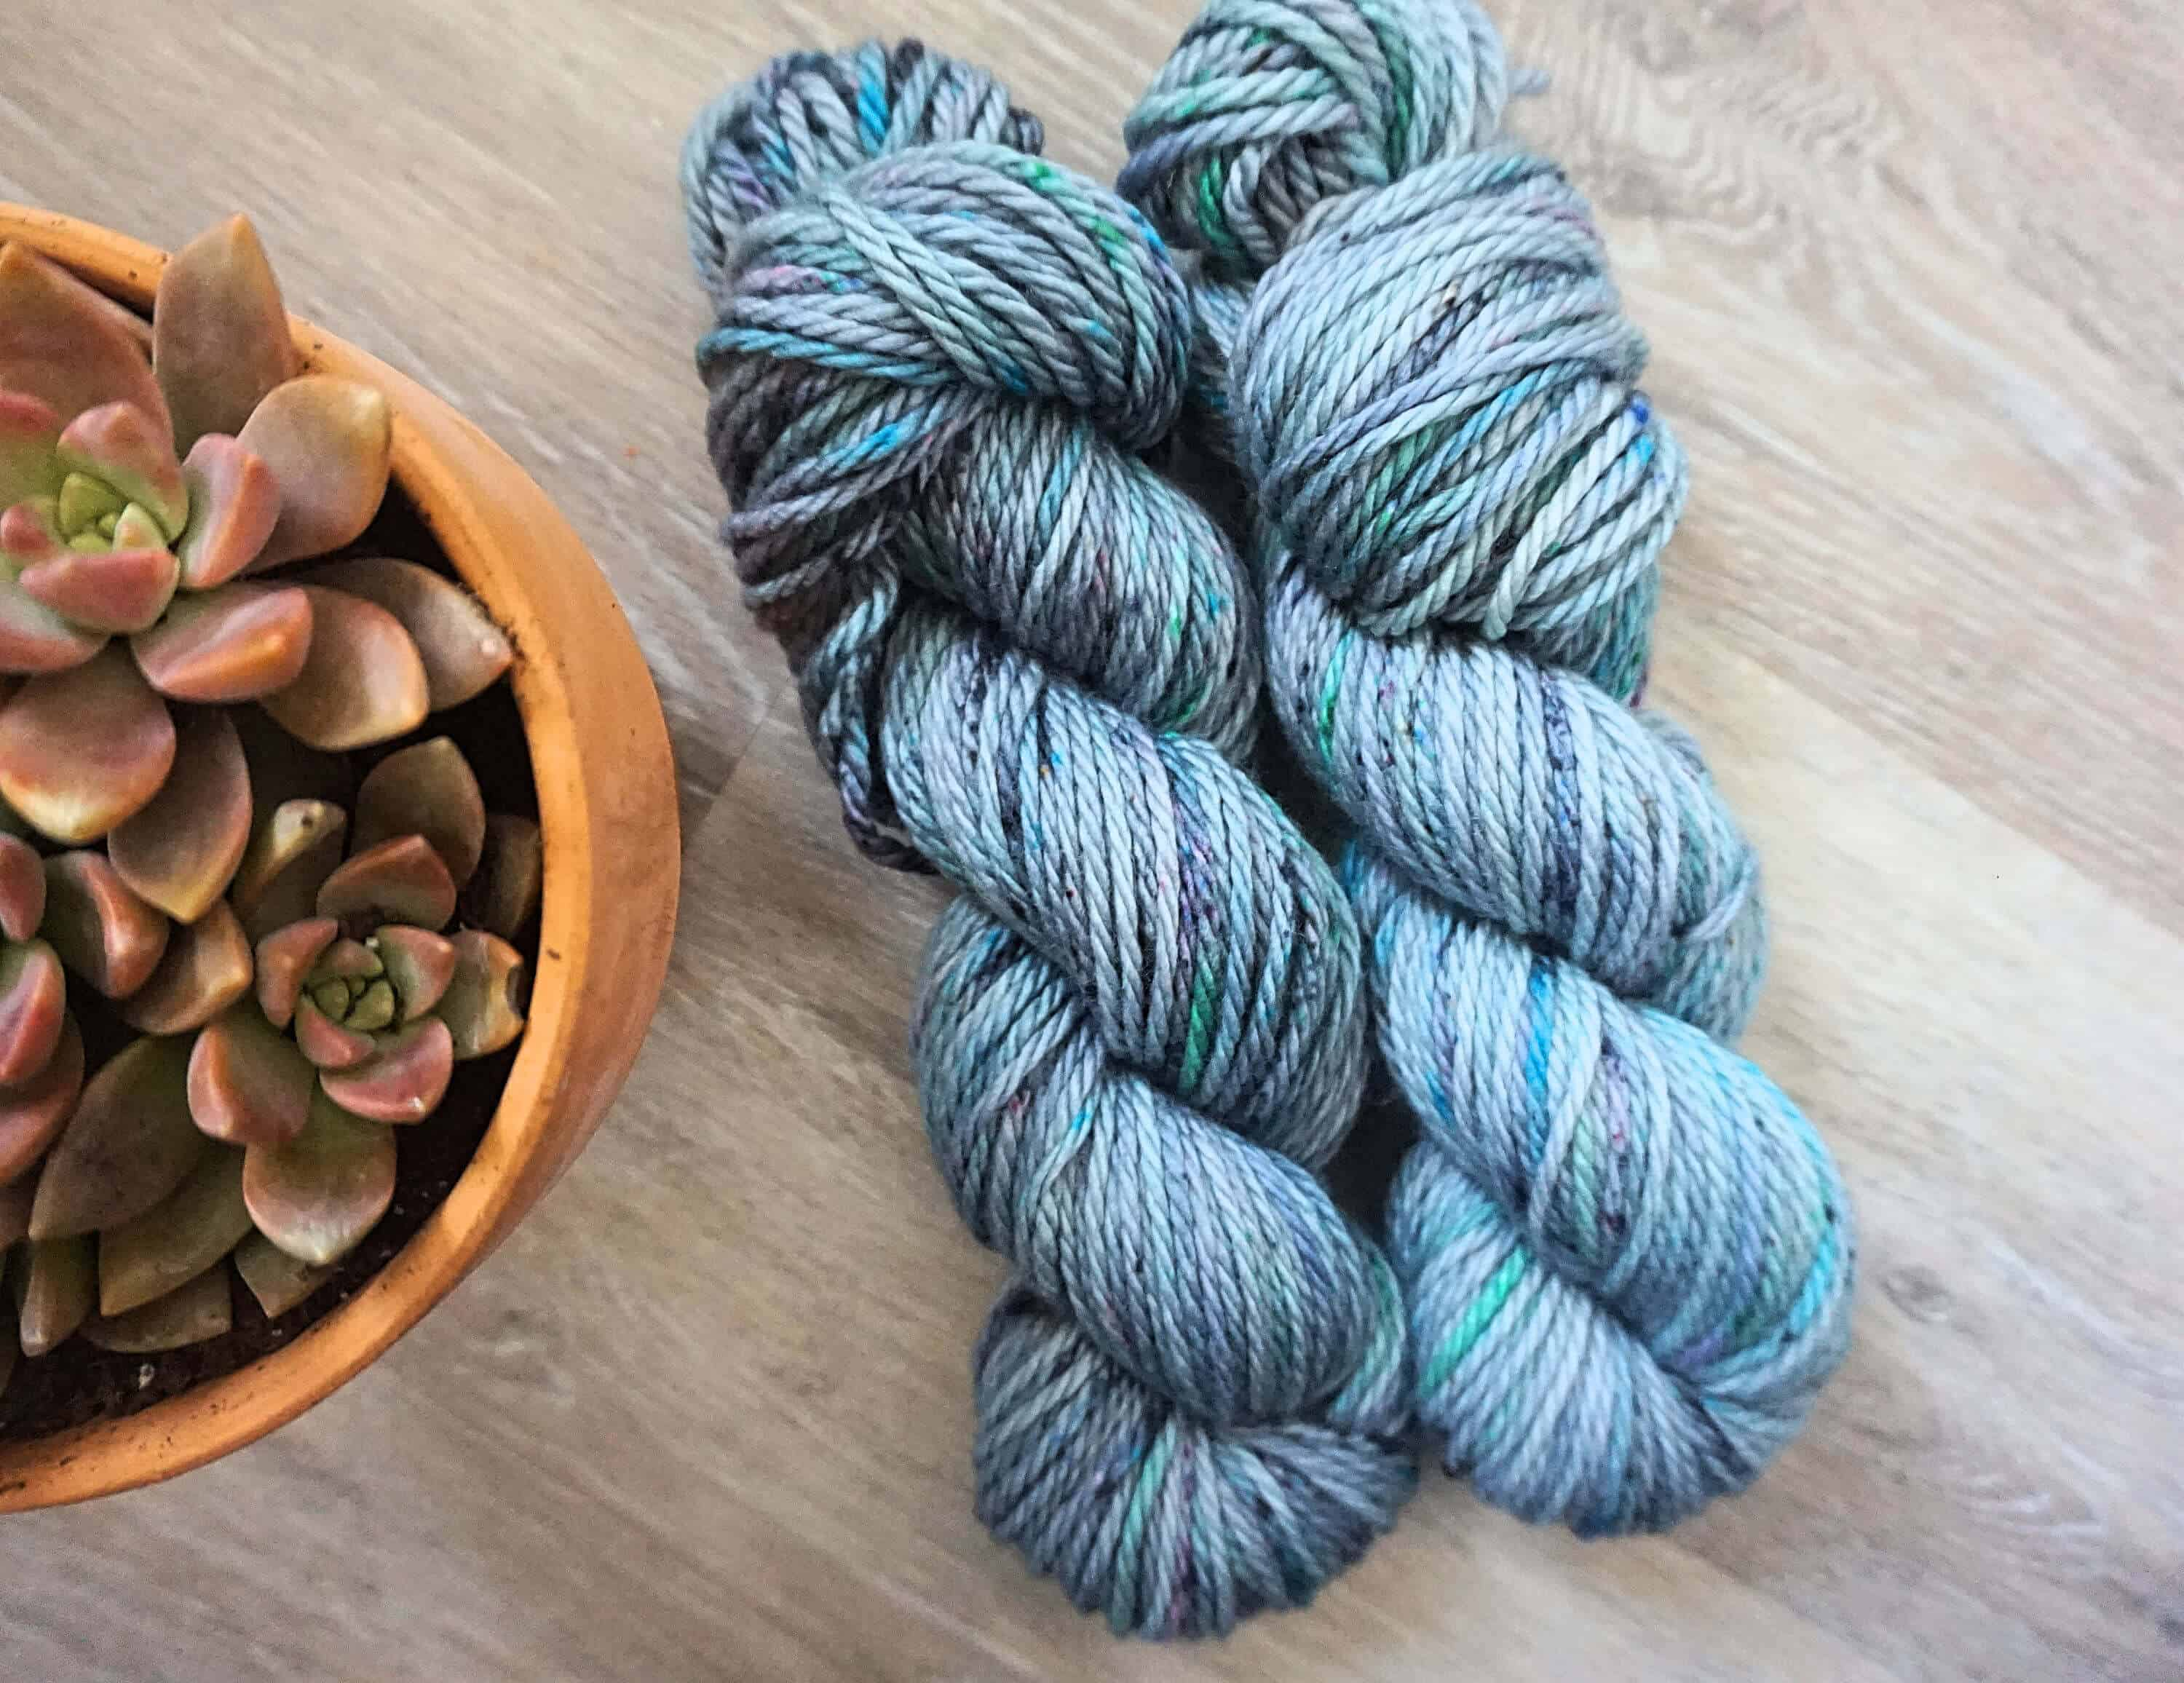 Image of 2 Bulky Merino Wool from Knit Coast Fibers with a pot of succulents at the left side